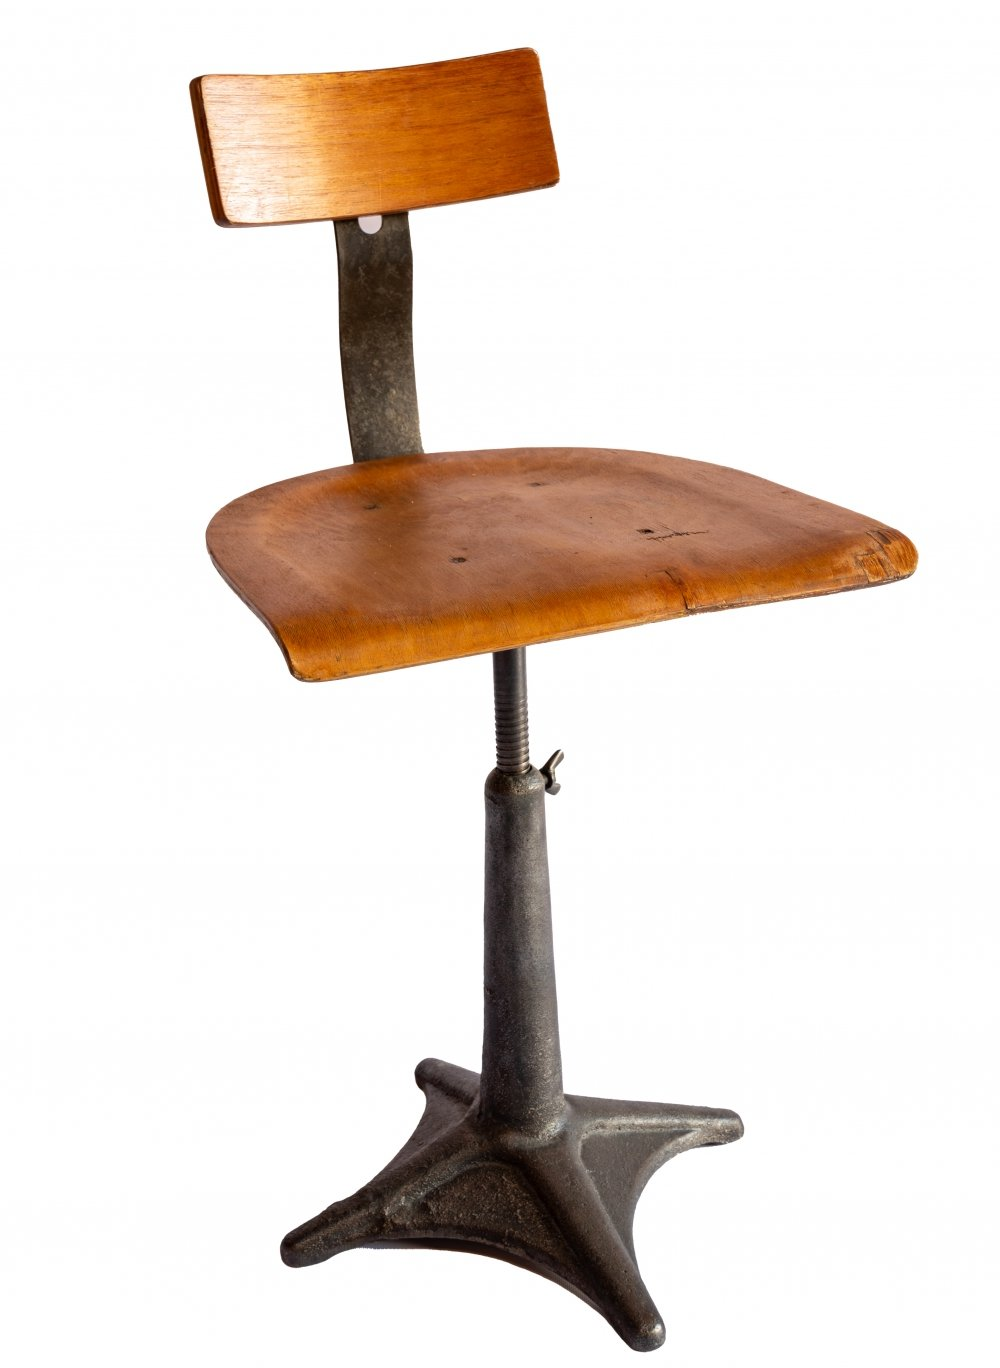 Industrial office chair / stool by Grylex, 1930s